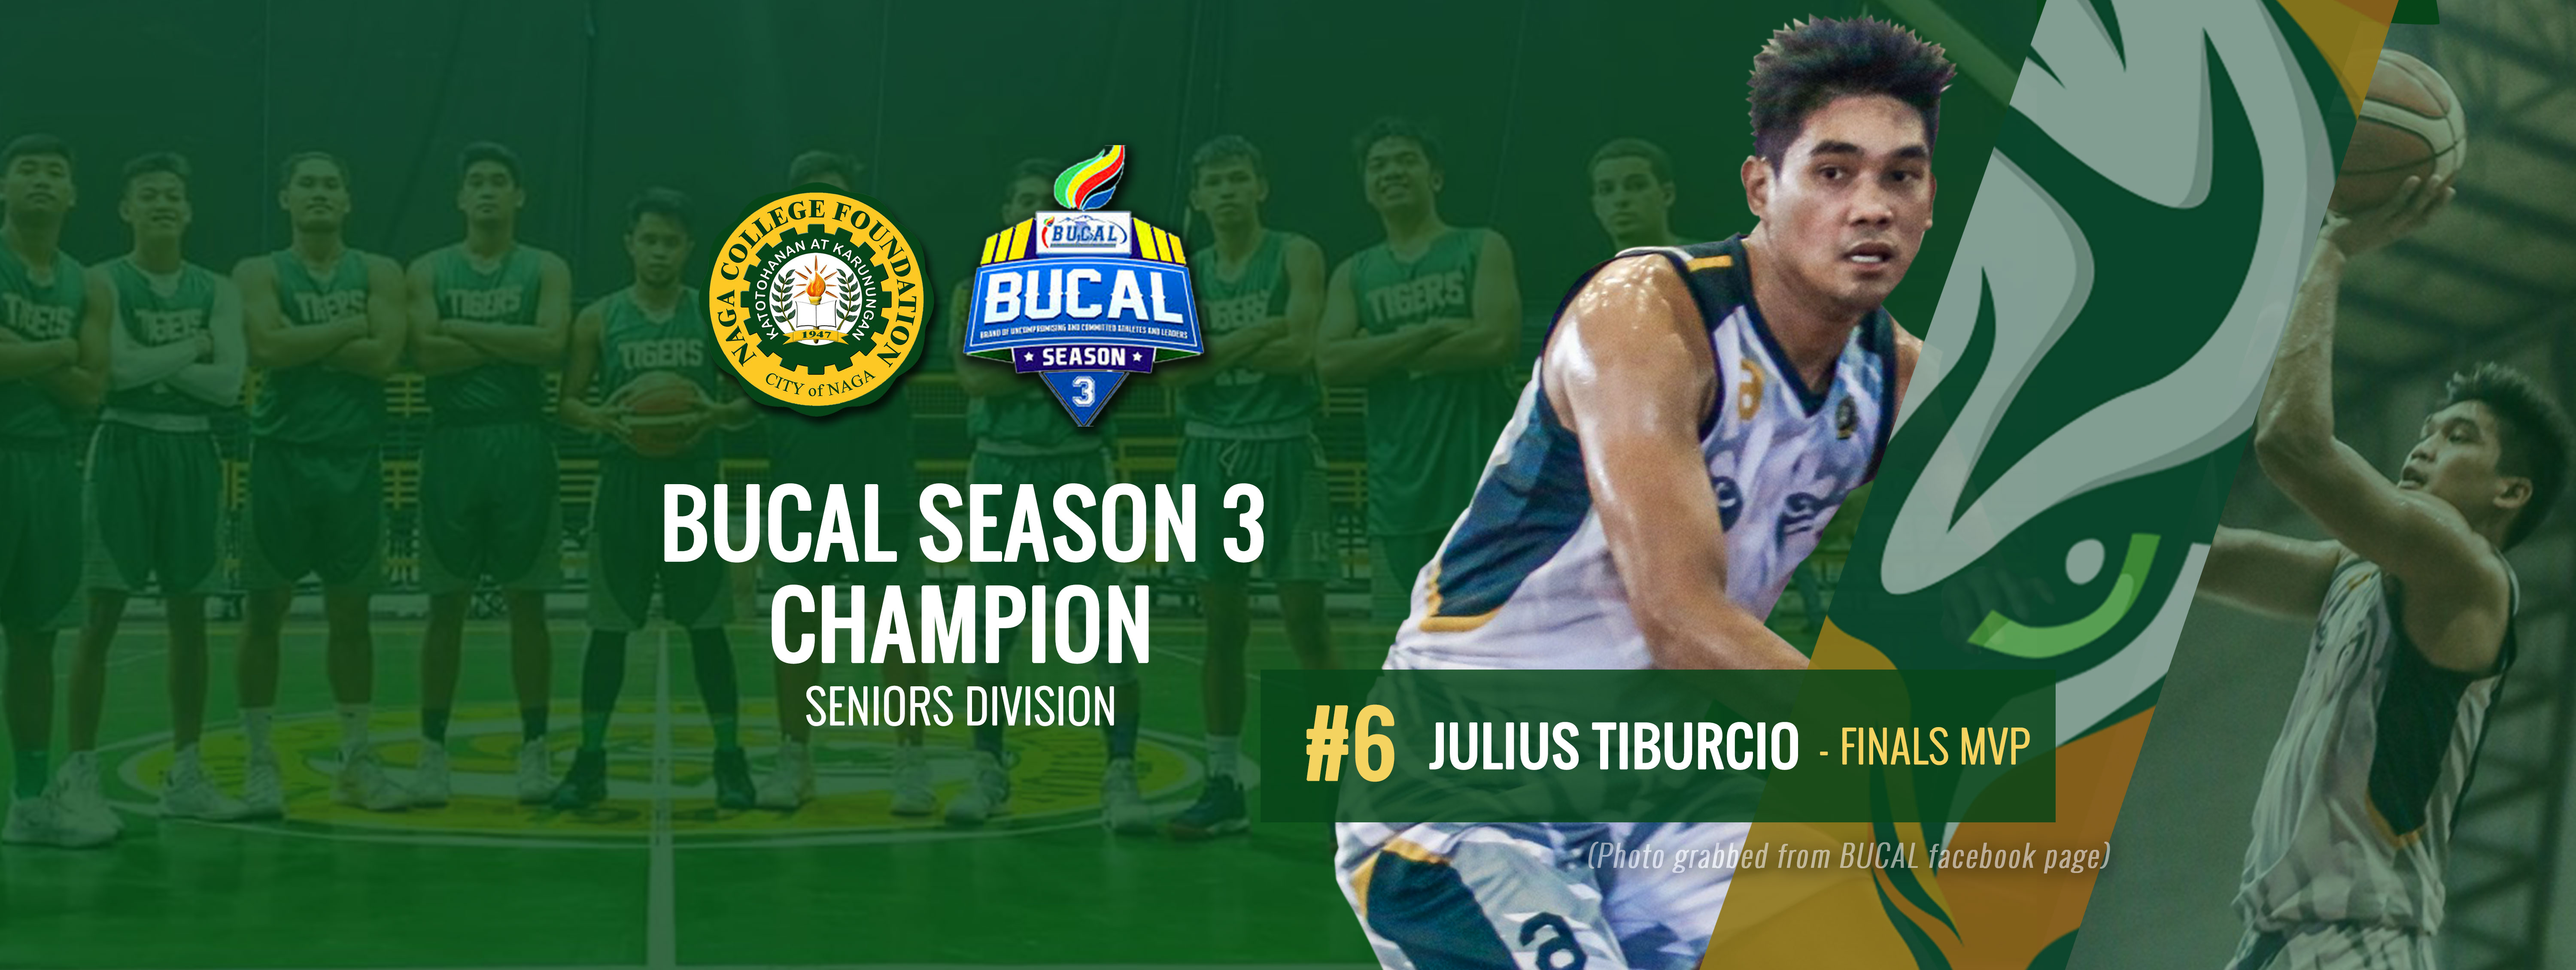 bucal champion